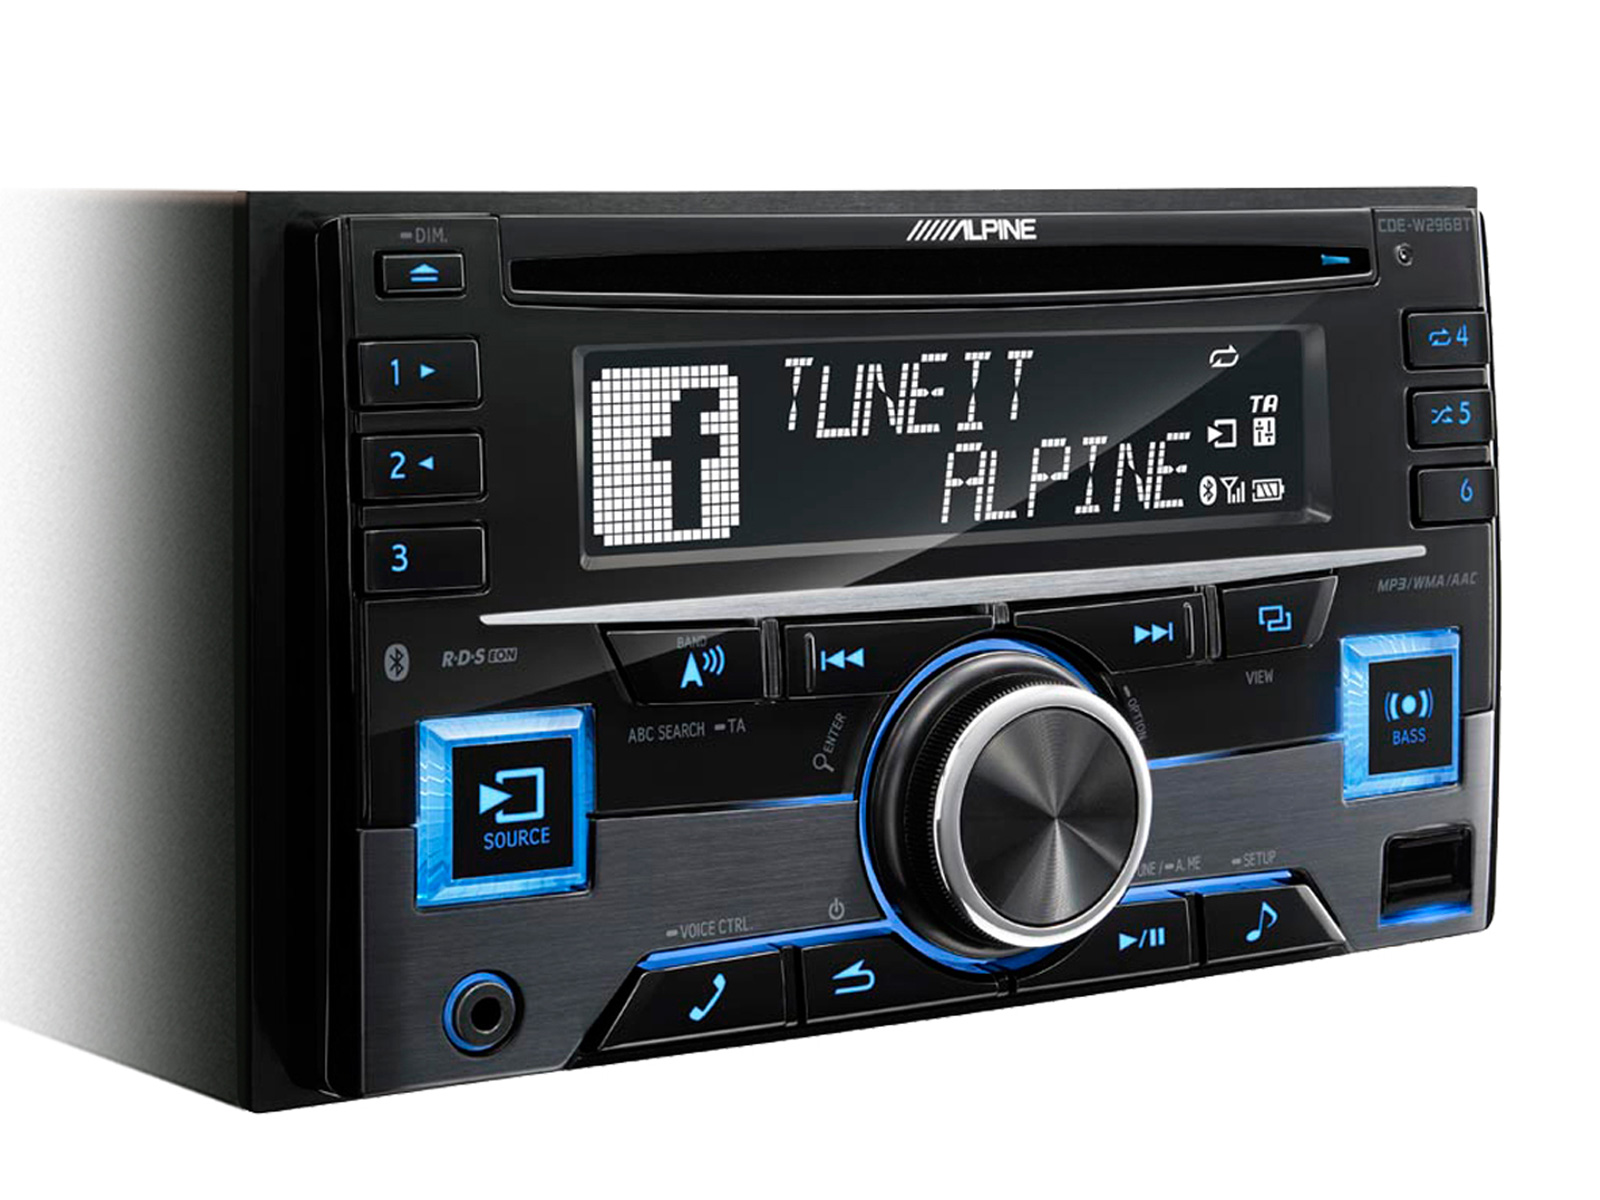 DEH P3100UB additionally Toyota Avensis T27 2010 likewise classiccarstereo co in addition Mixing With Headphones Vs Mixing With in addition Watch. on ipod car stereo